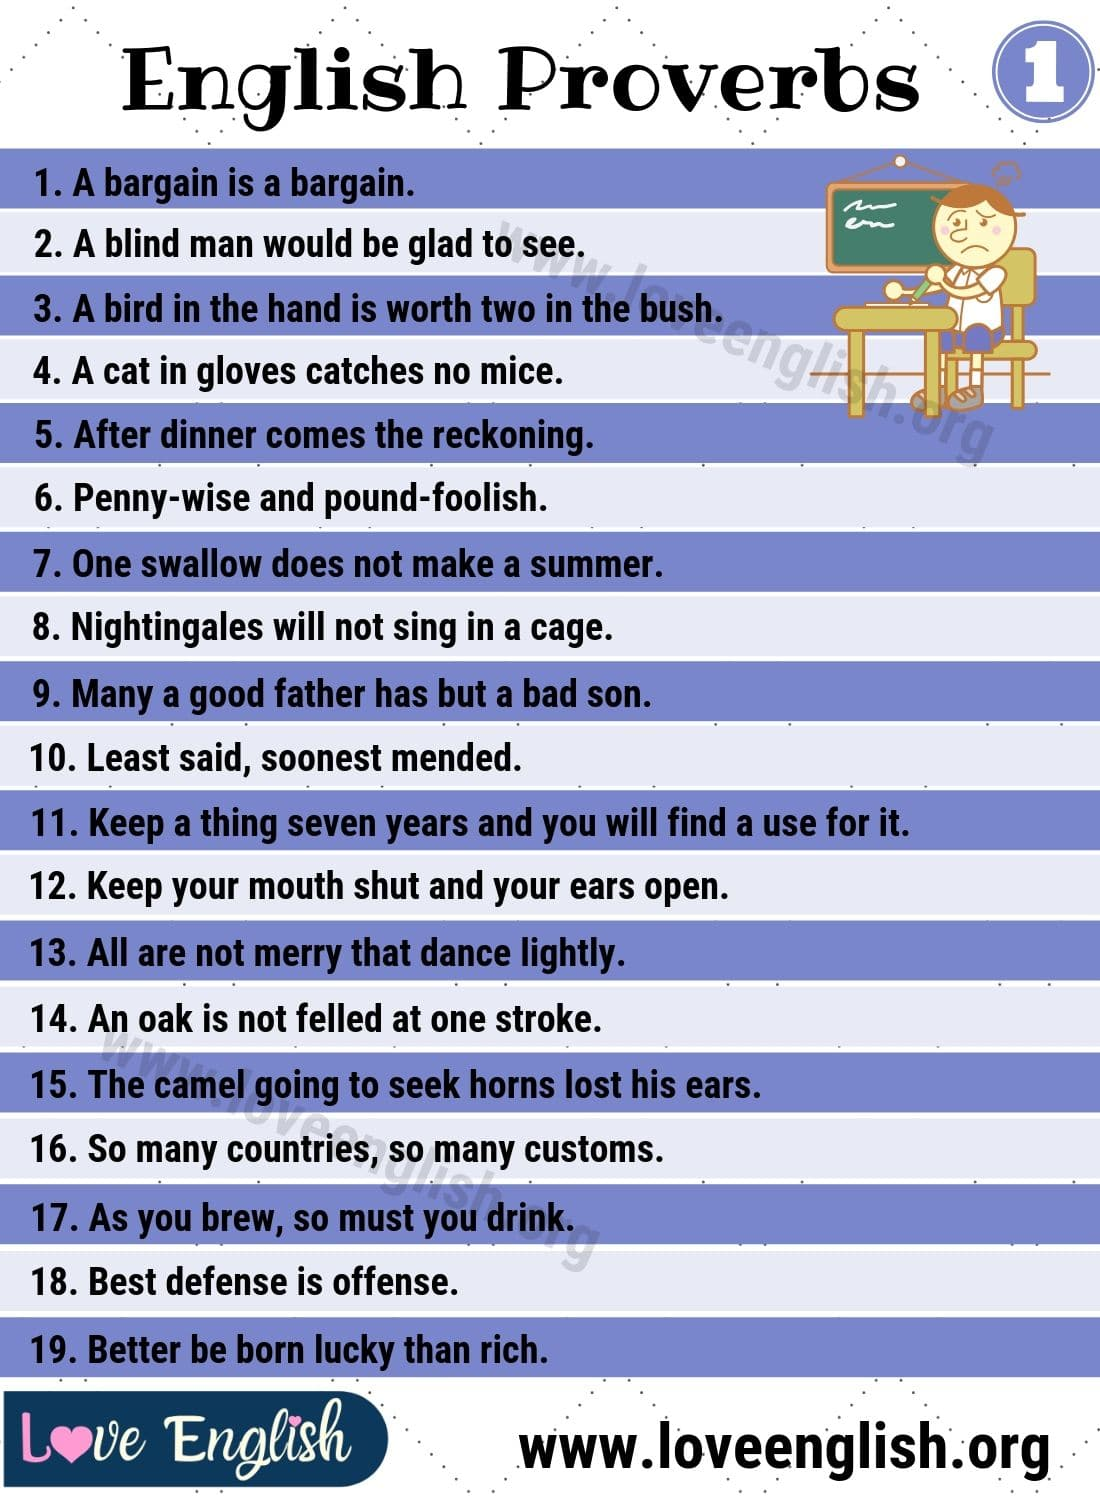 Proverbs 50 Useful And Important English Proverbs For Esl Students Love English